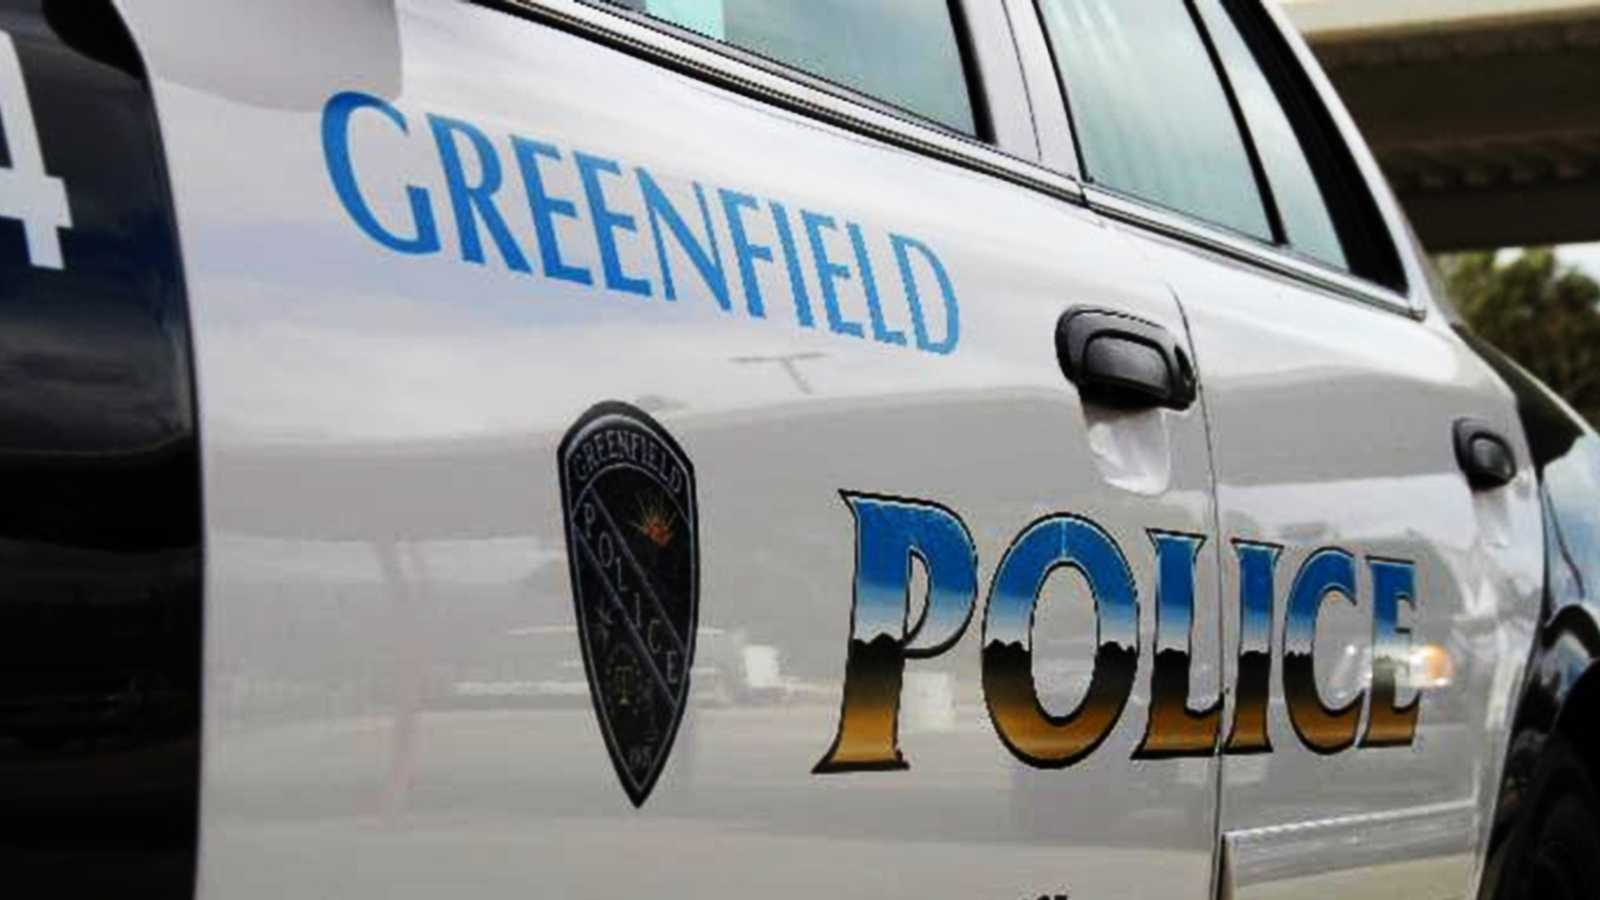 Greenfield police spearheaded a collaborative gang suppression operation over the weekend and arrested 21 offenders throughout South Monterey County.